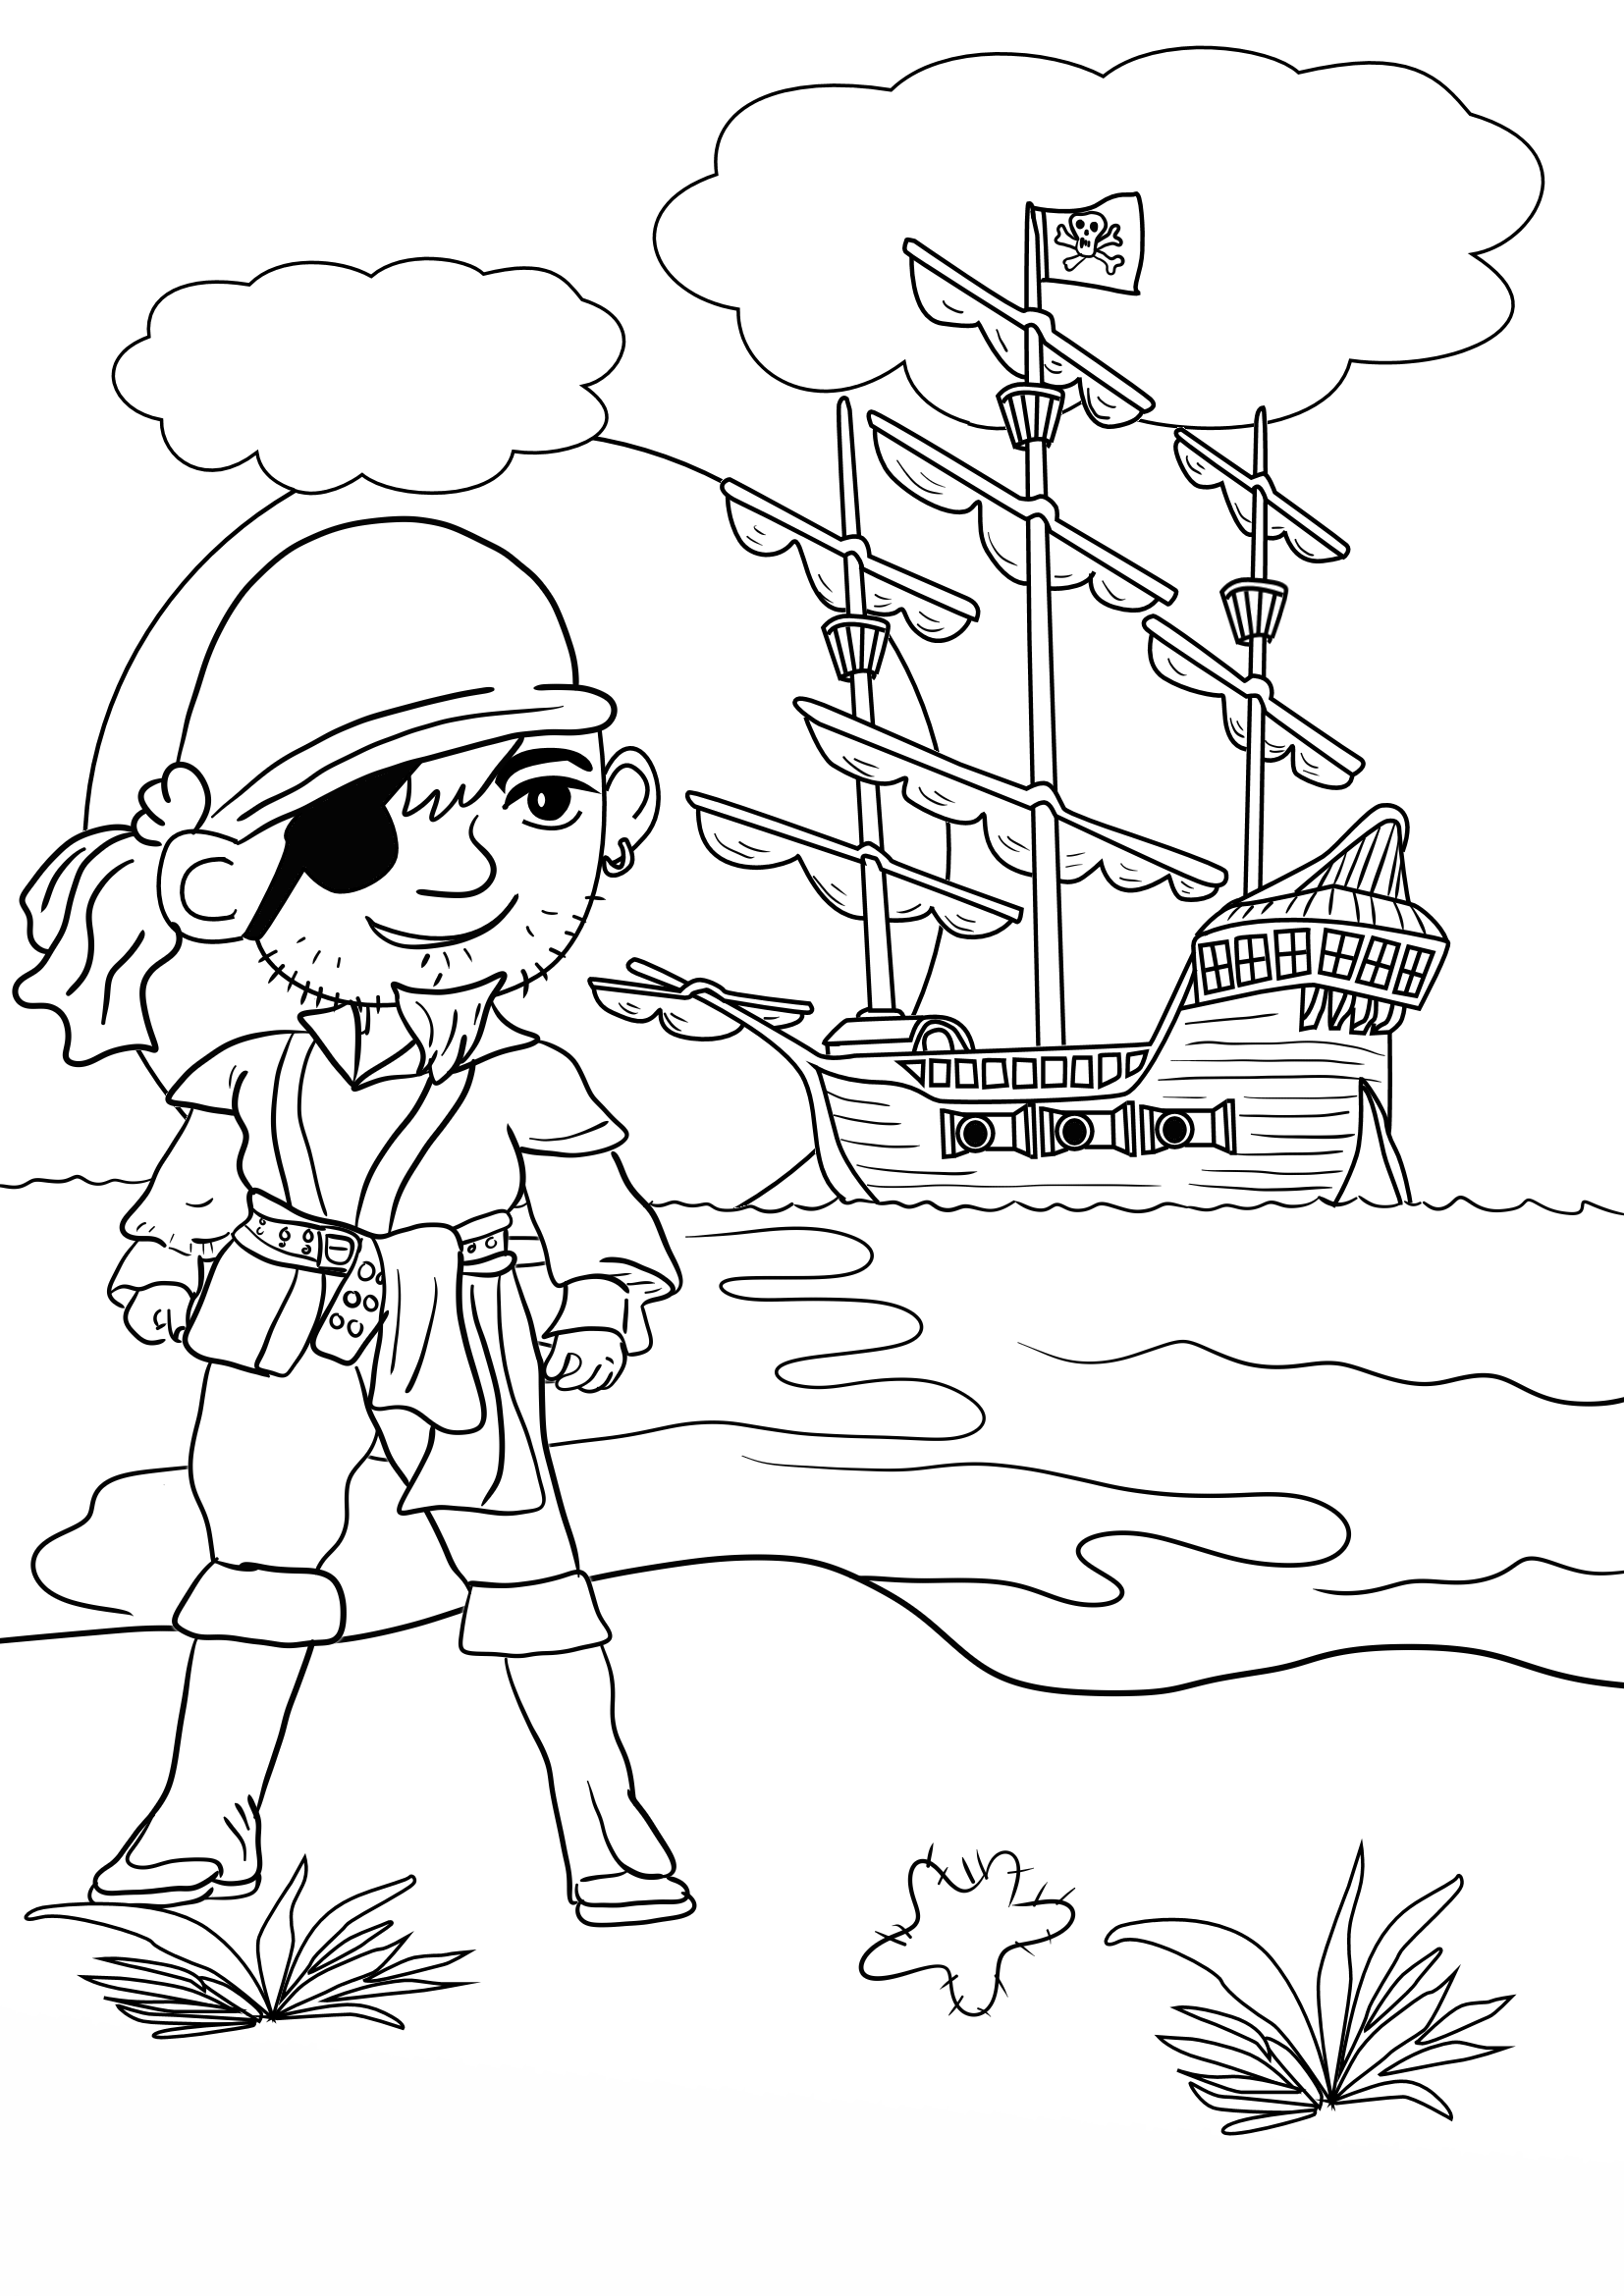 pirate coloring pages for kids printable 07012013 08012013 colouring for kids pages for coloring pirate kids printable